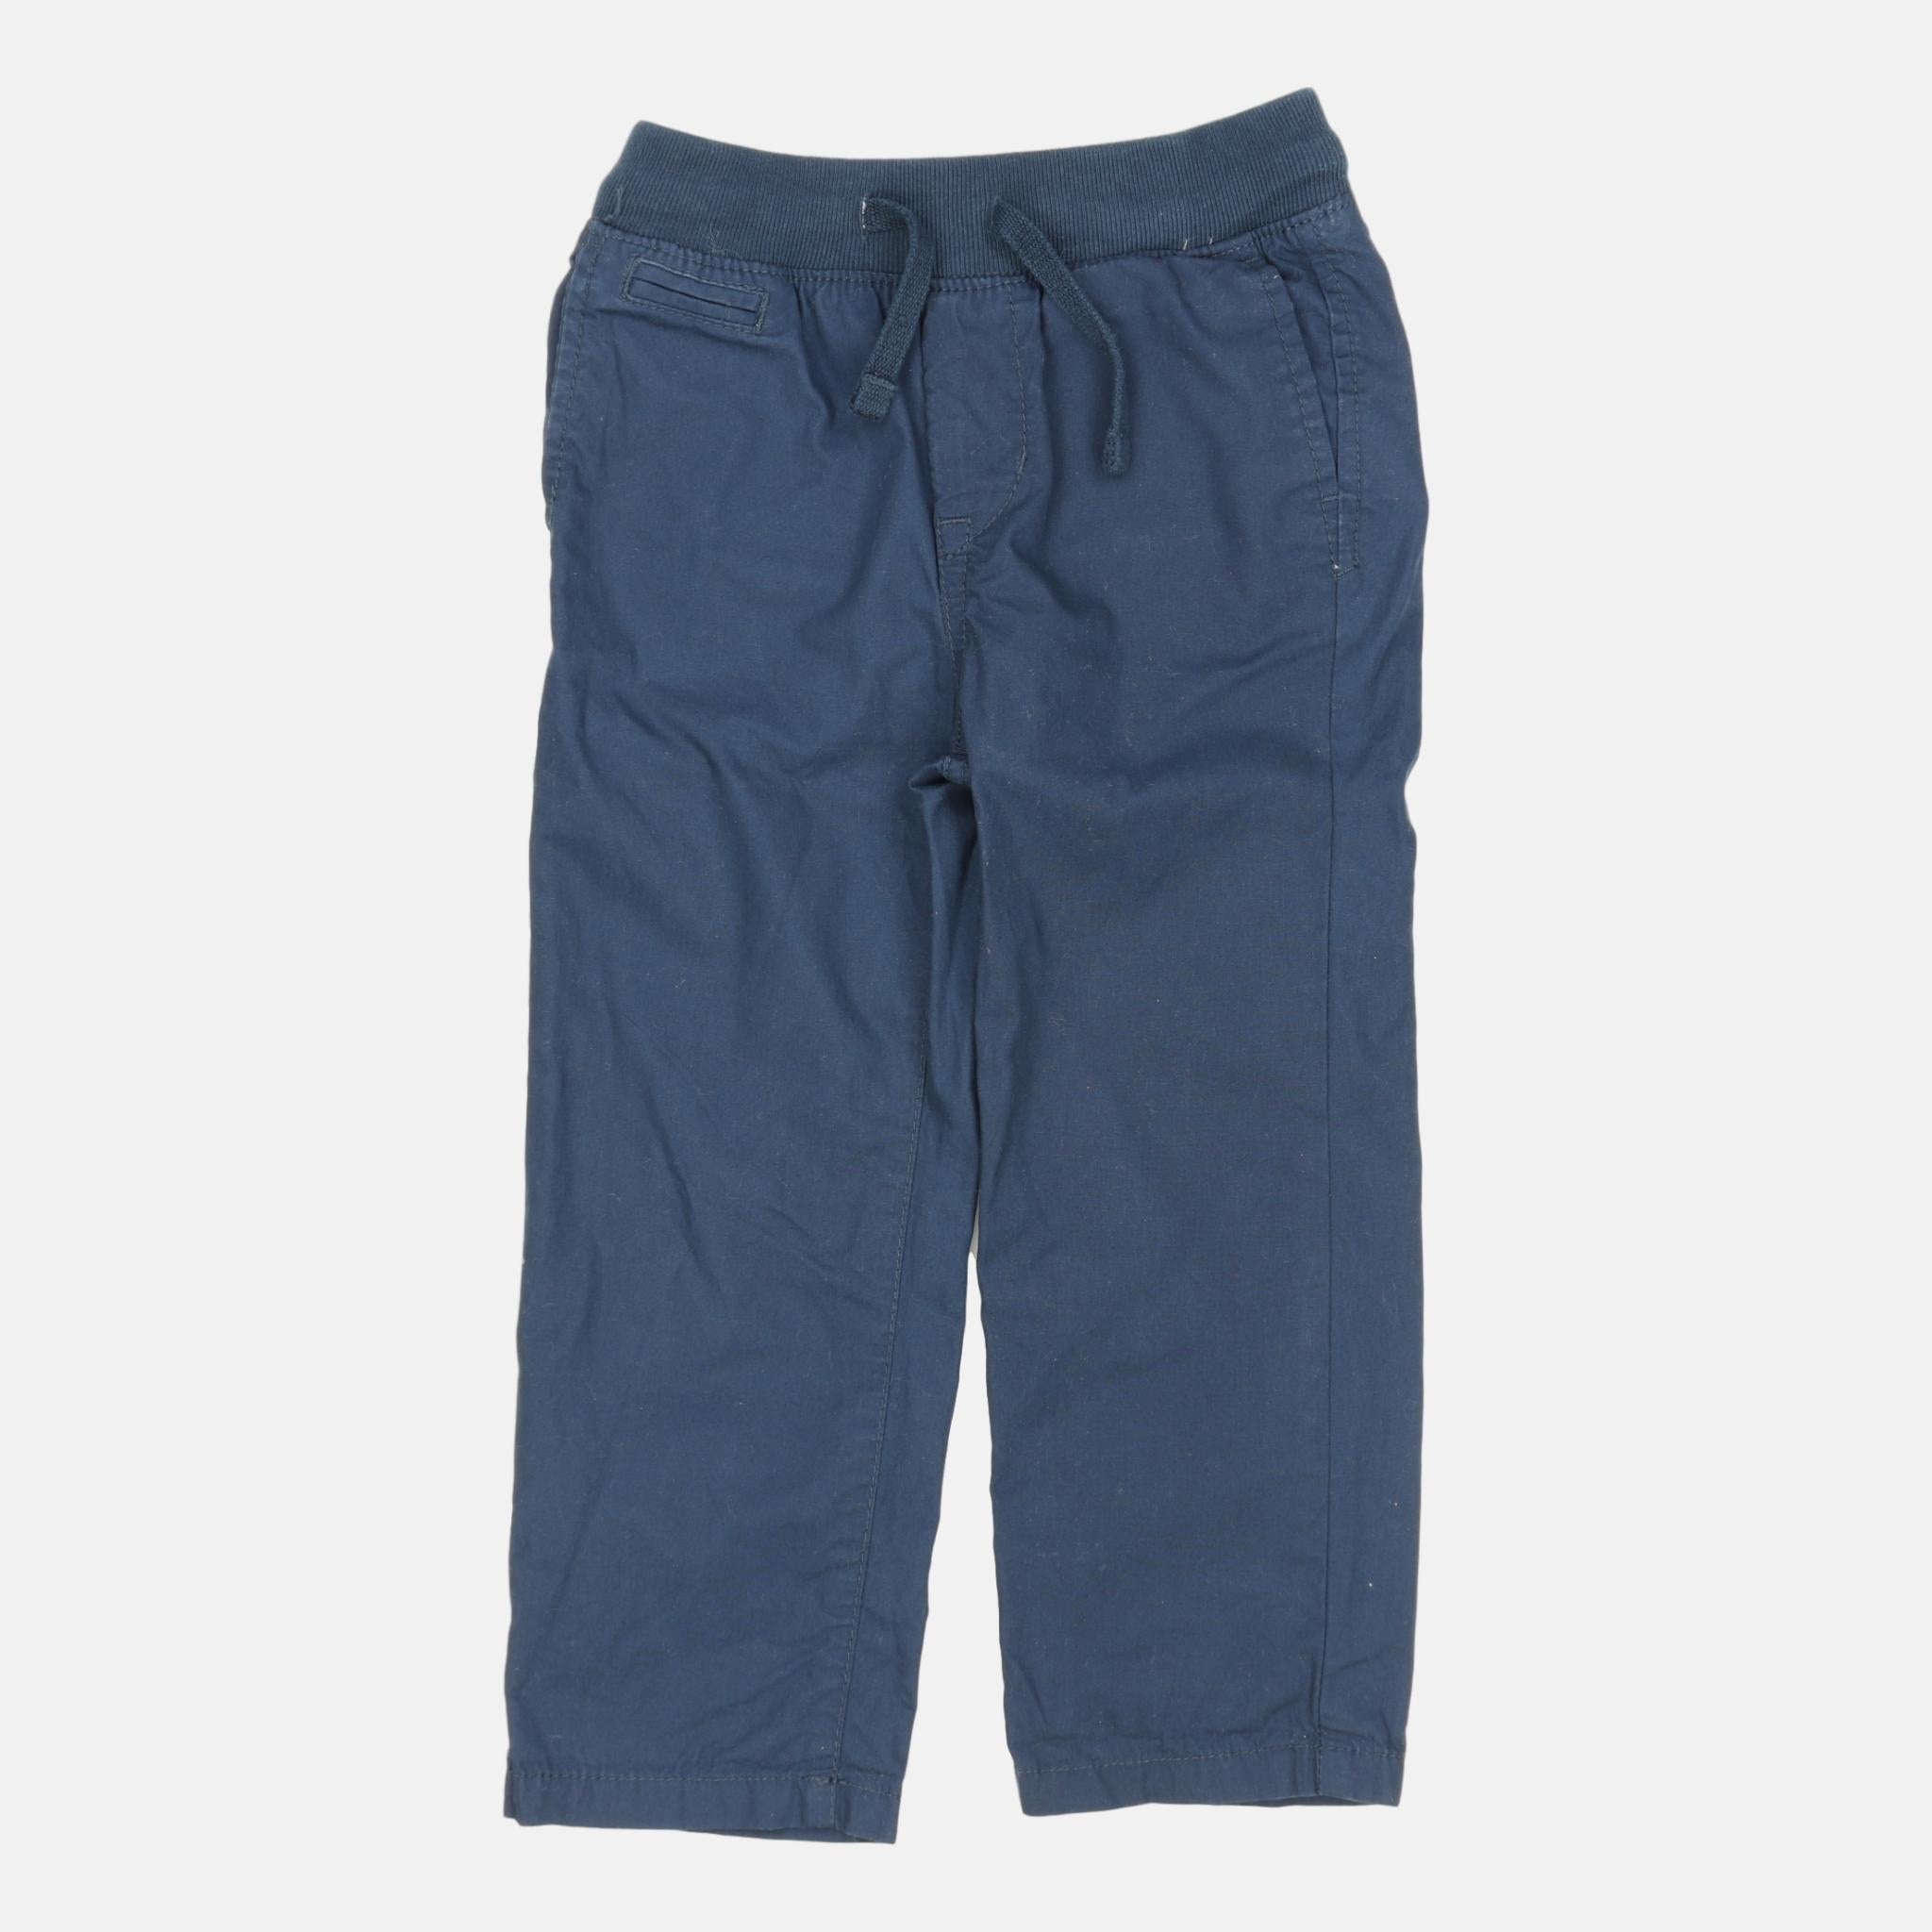 Trousers, 3-4 Years